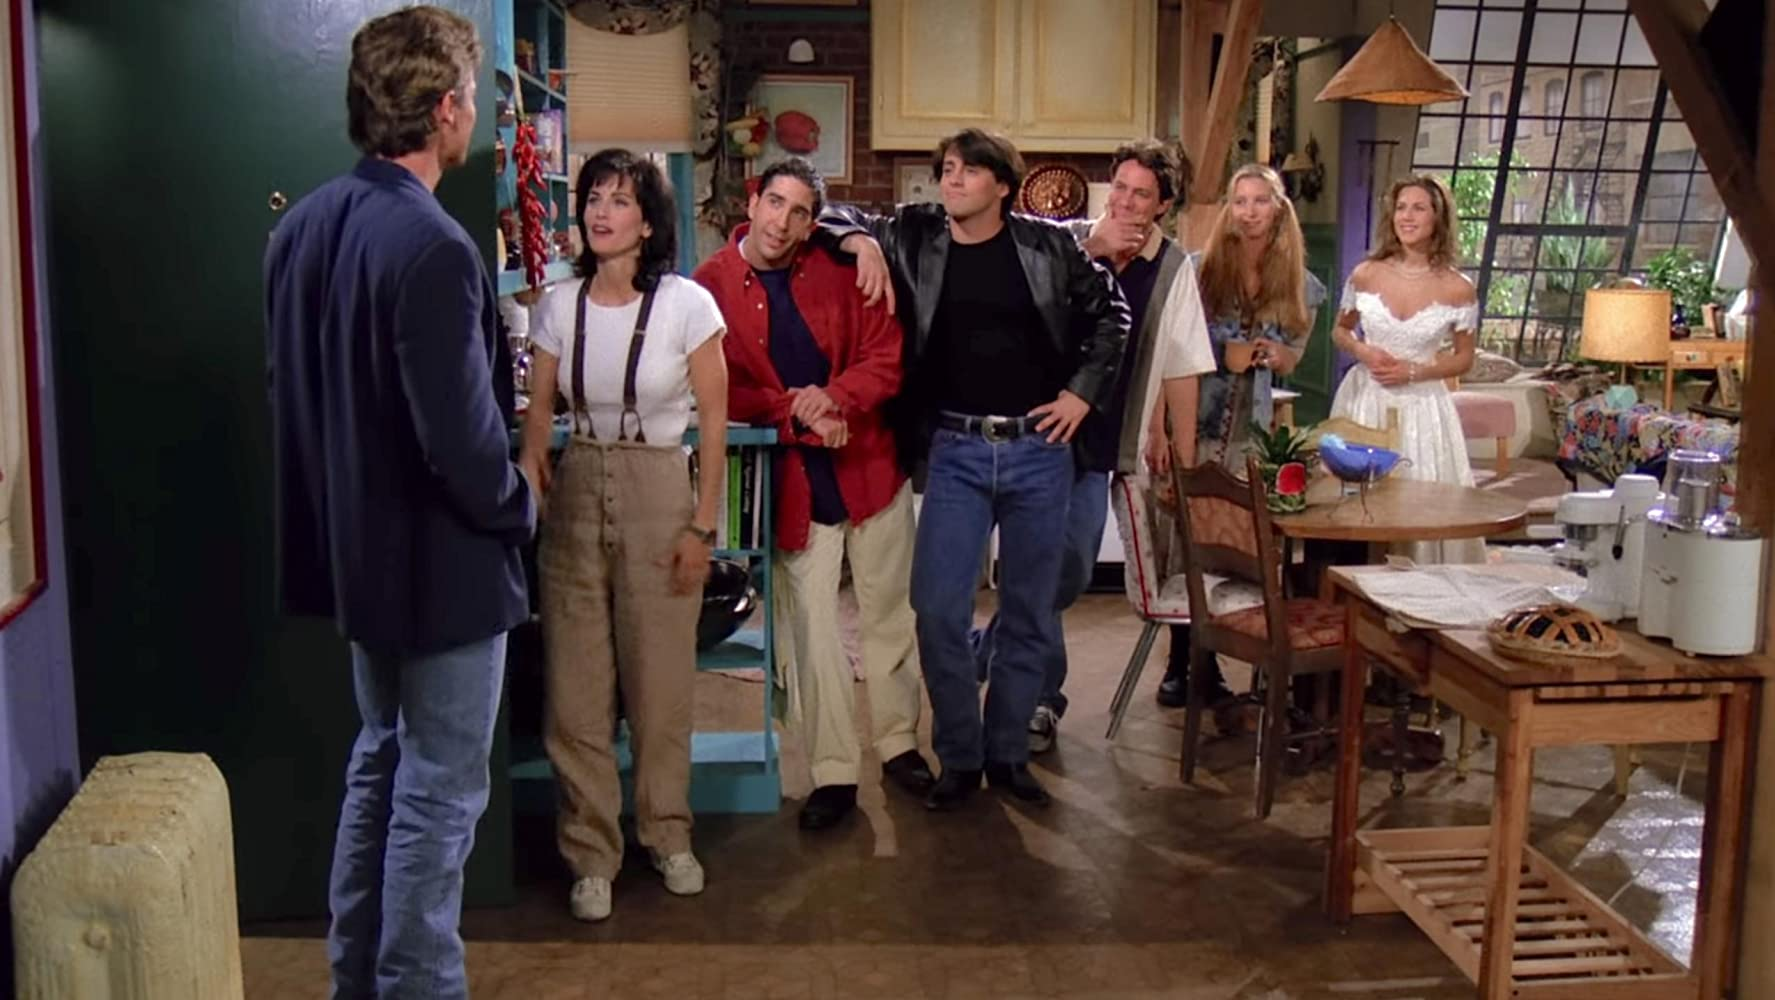 The Pilot Episode of Friends is Far from Perfect, but Full of Charm